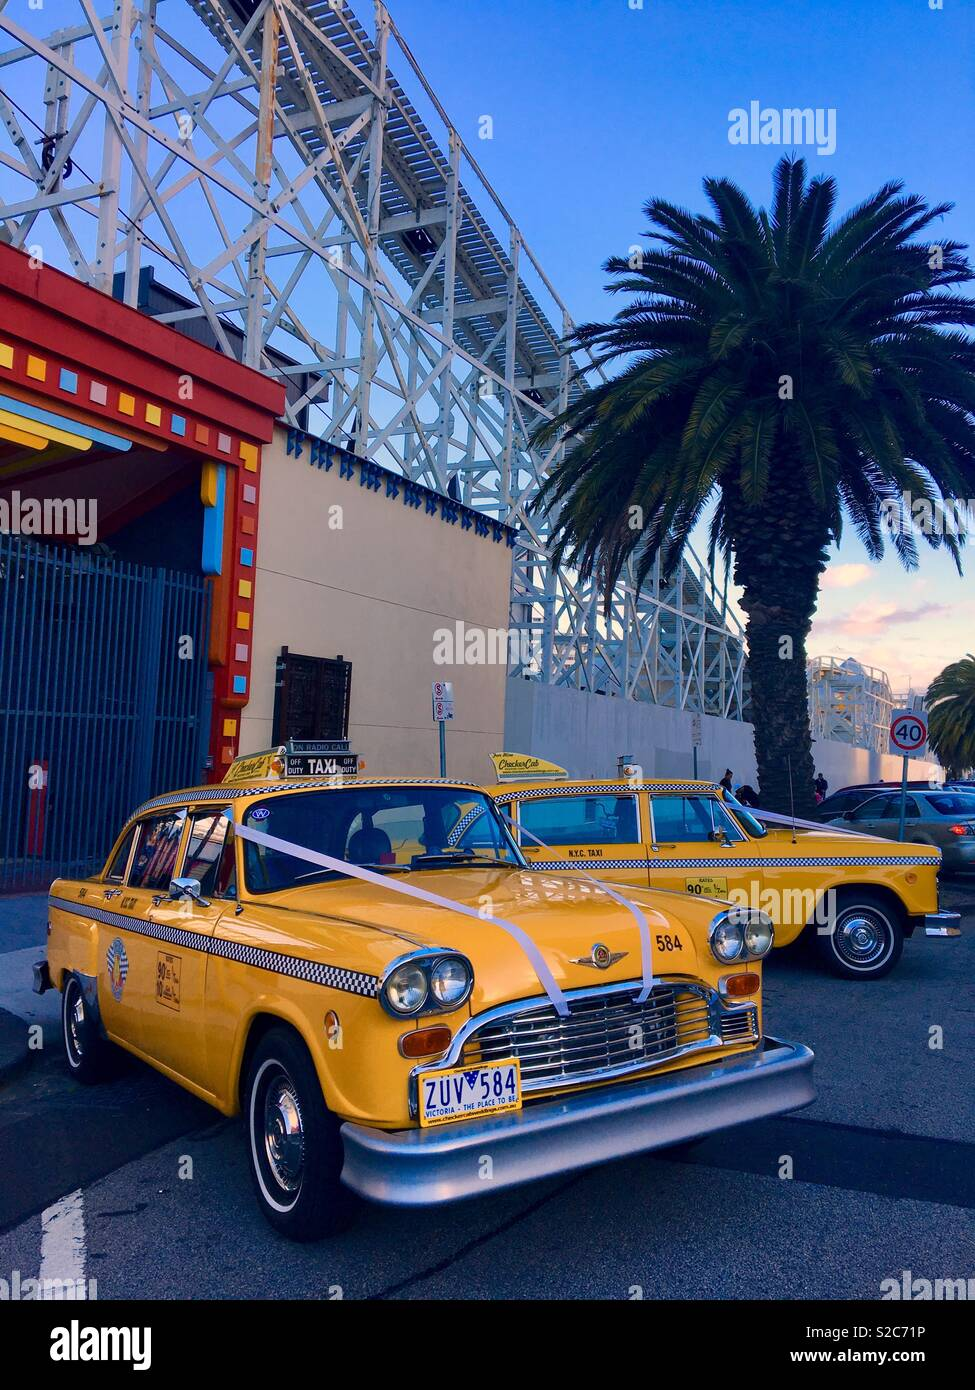 Old American Checker yellow taxi cabs for weddings at Luna Park St. Kilda in Melbourne Australia Stock Photo